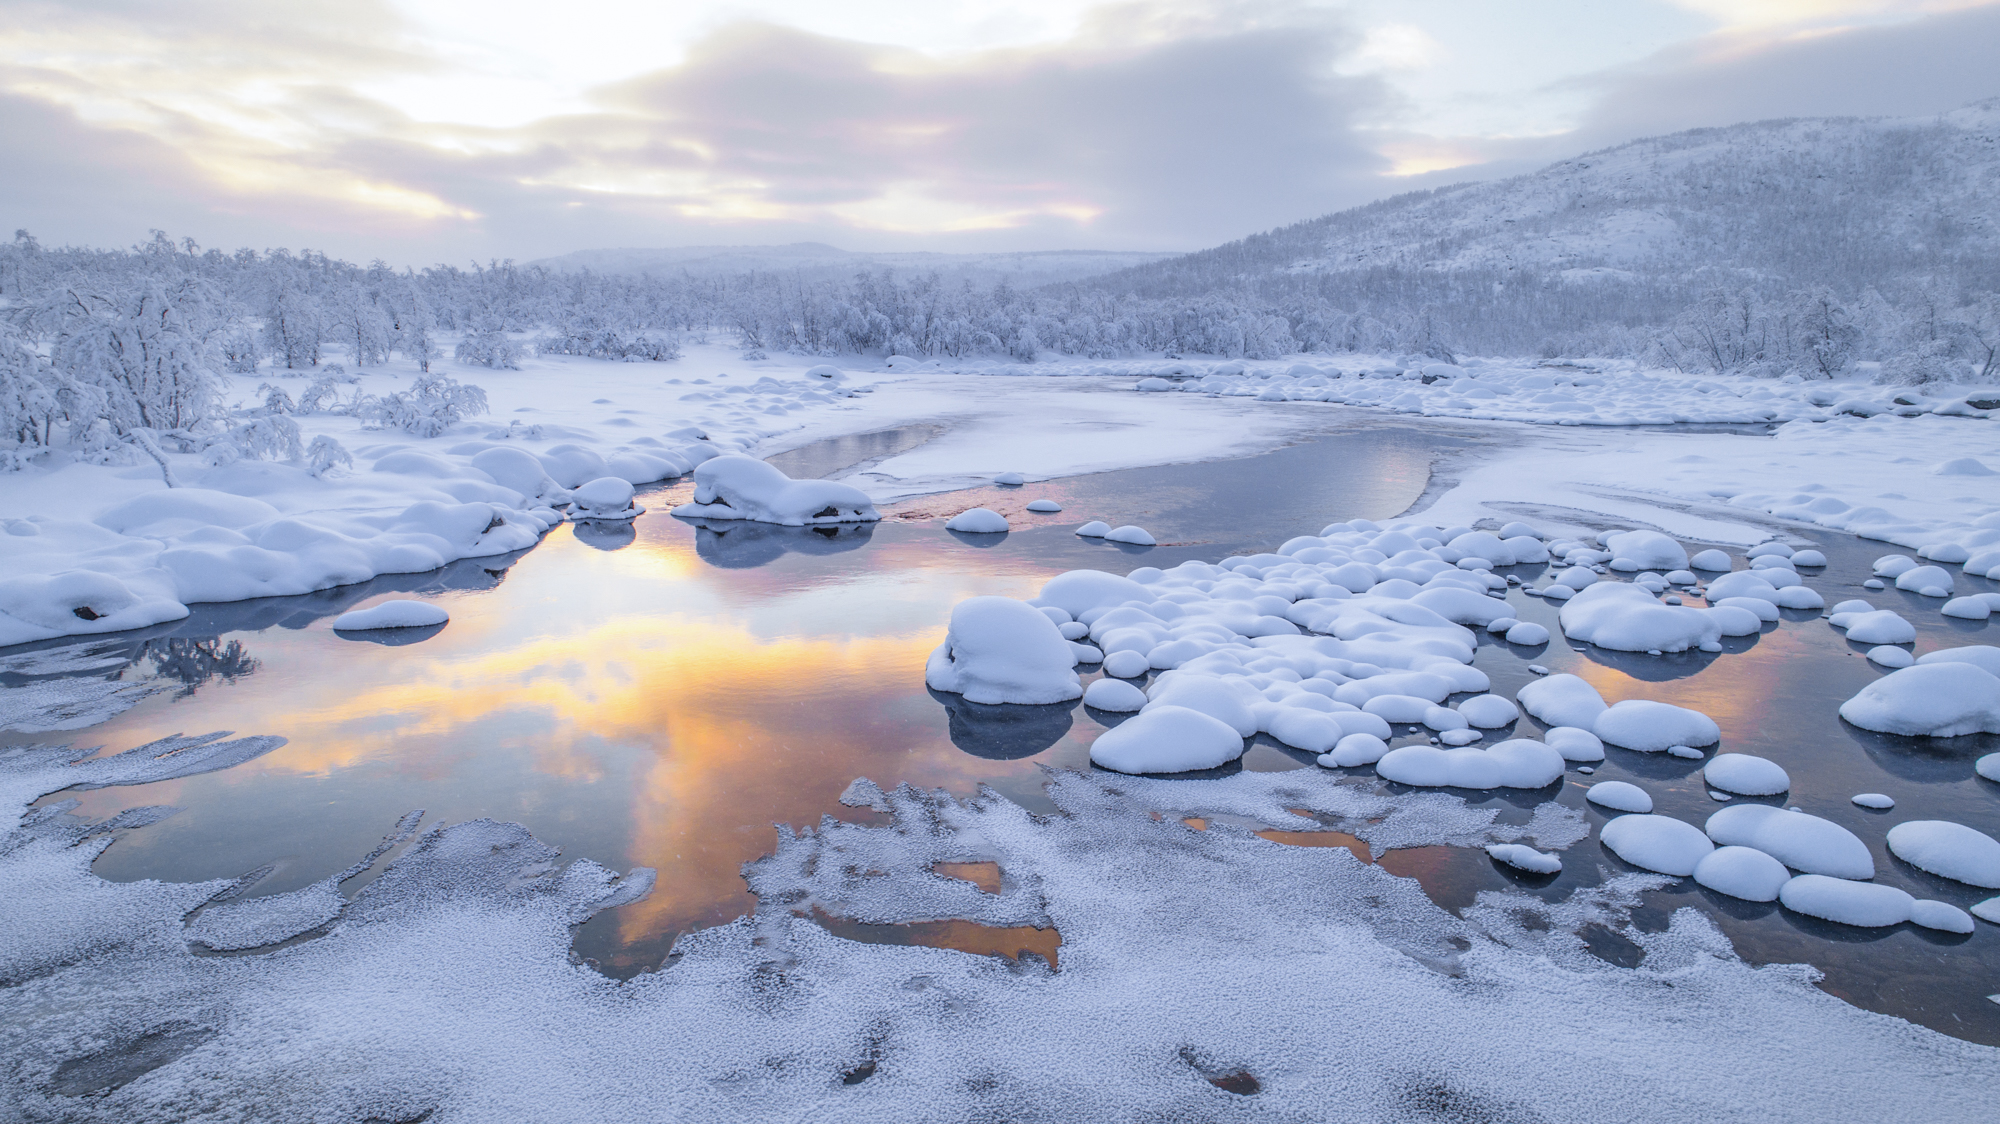 arctic_view_landscape_winter.jpg